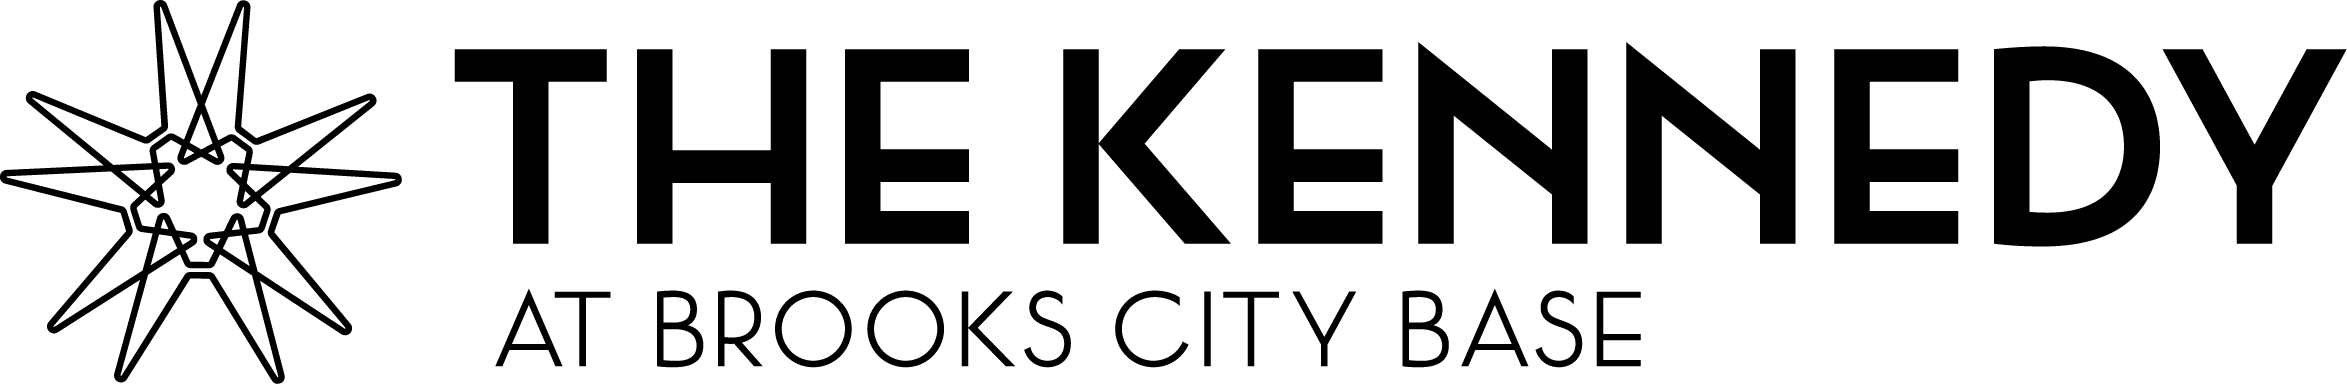 The Kennedy logo and brand mark